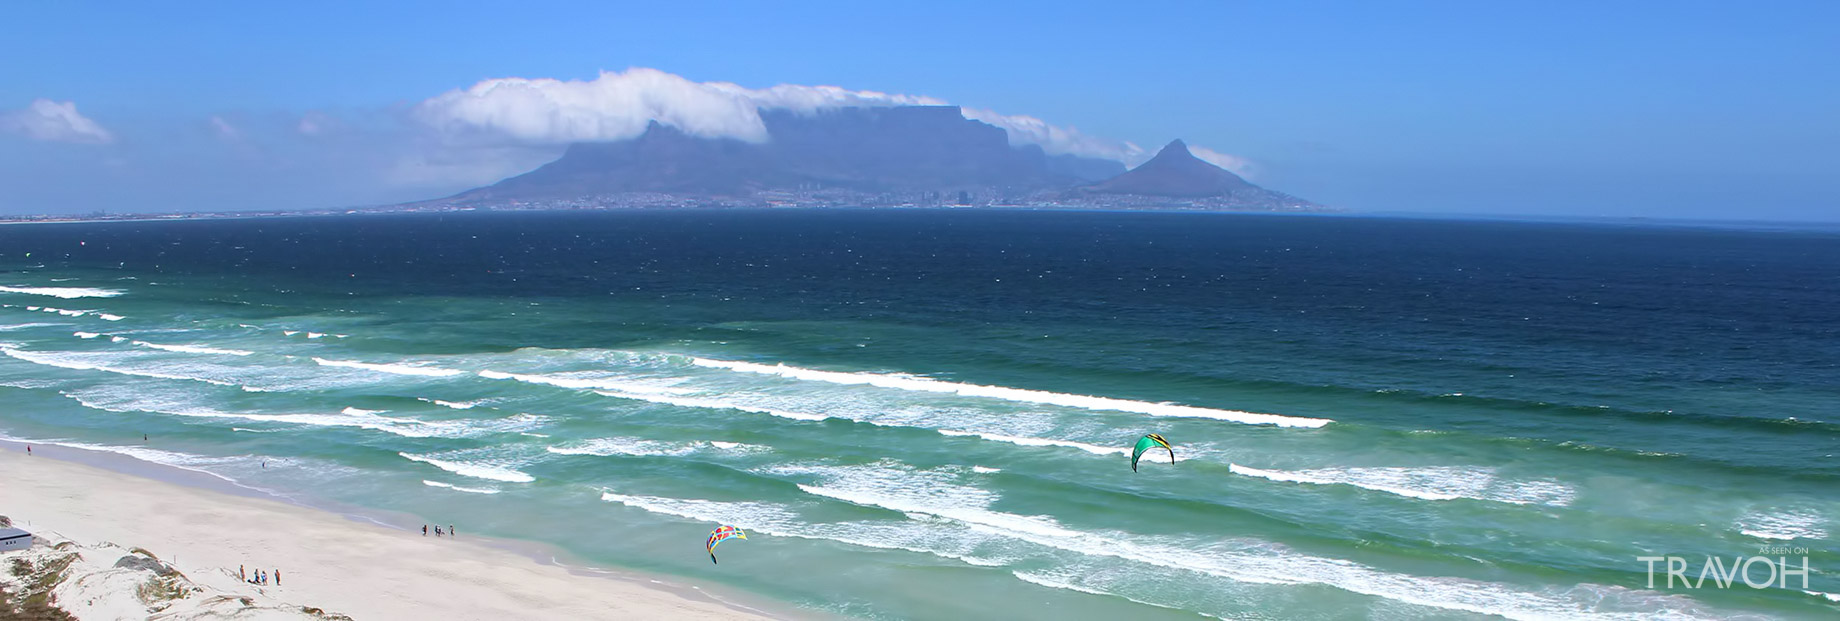 Bloubergstrand Beach - Exploring 10 of the Top Beaches in Cape Town, South Africa